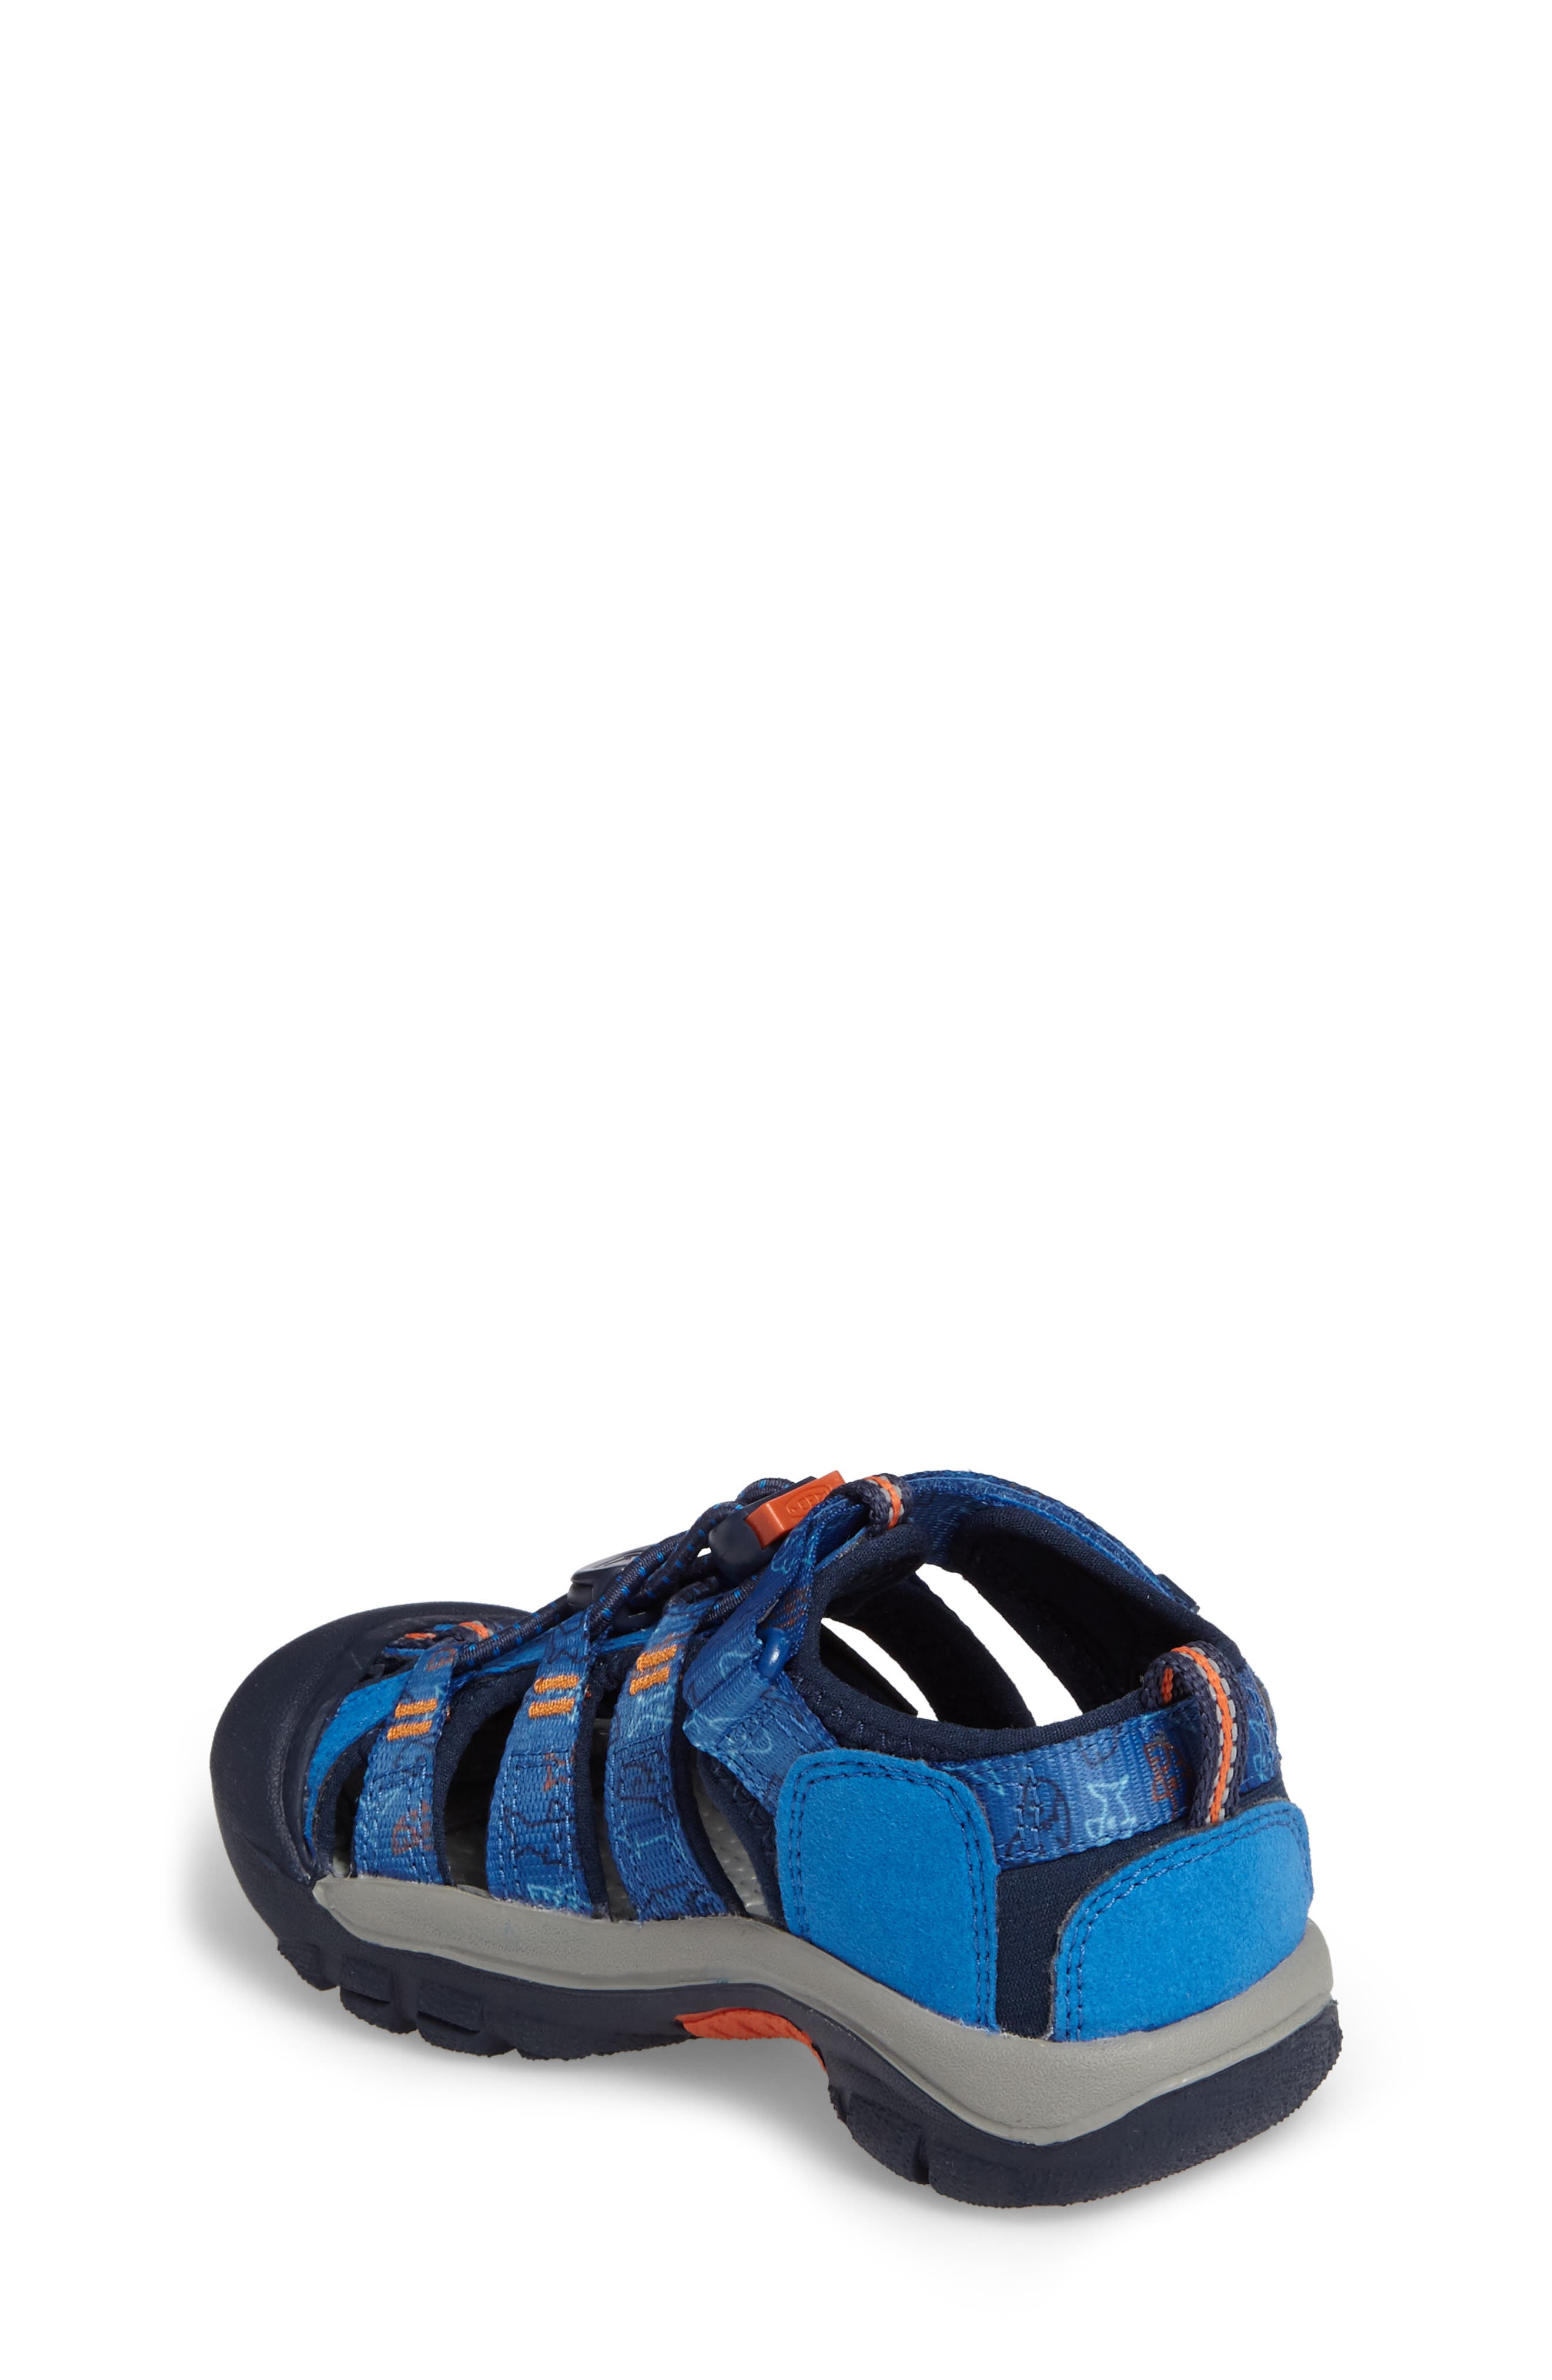 ,                             'Newport H2' Water Friendly Sandal,                             Alternate thumbnail 344, color,                             410